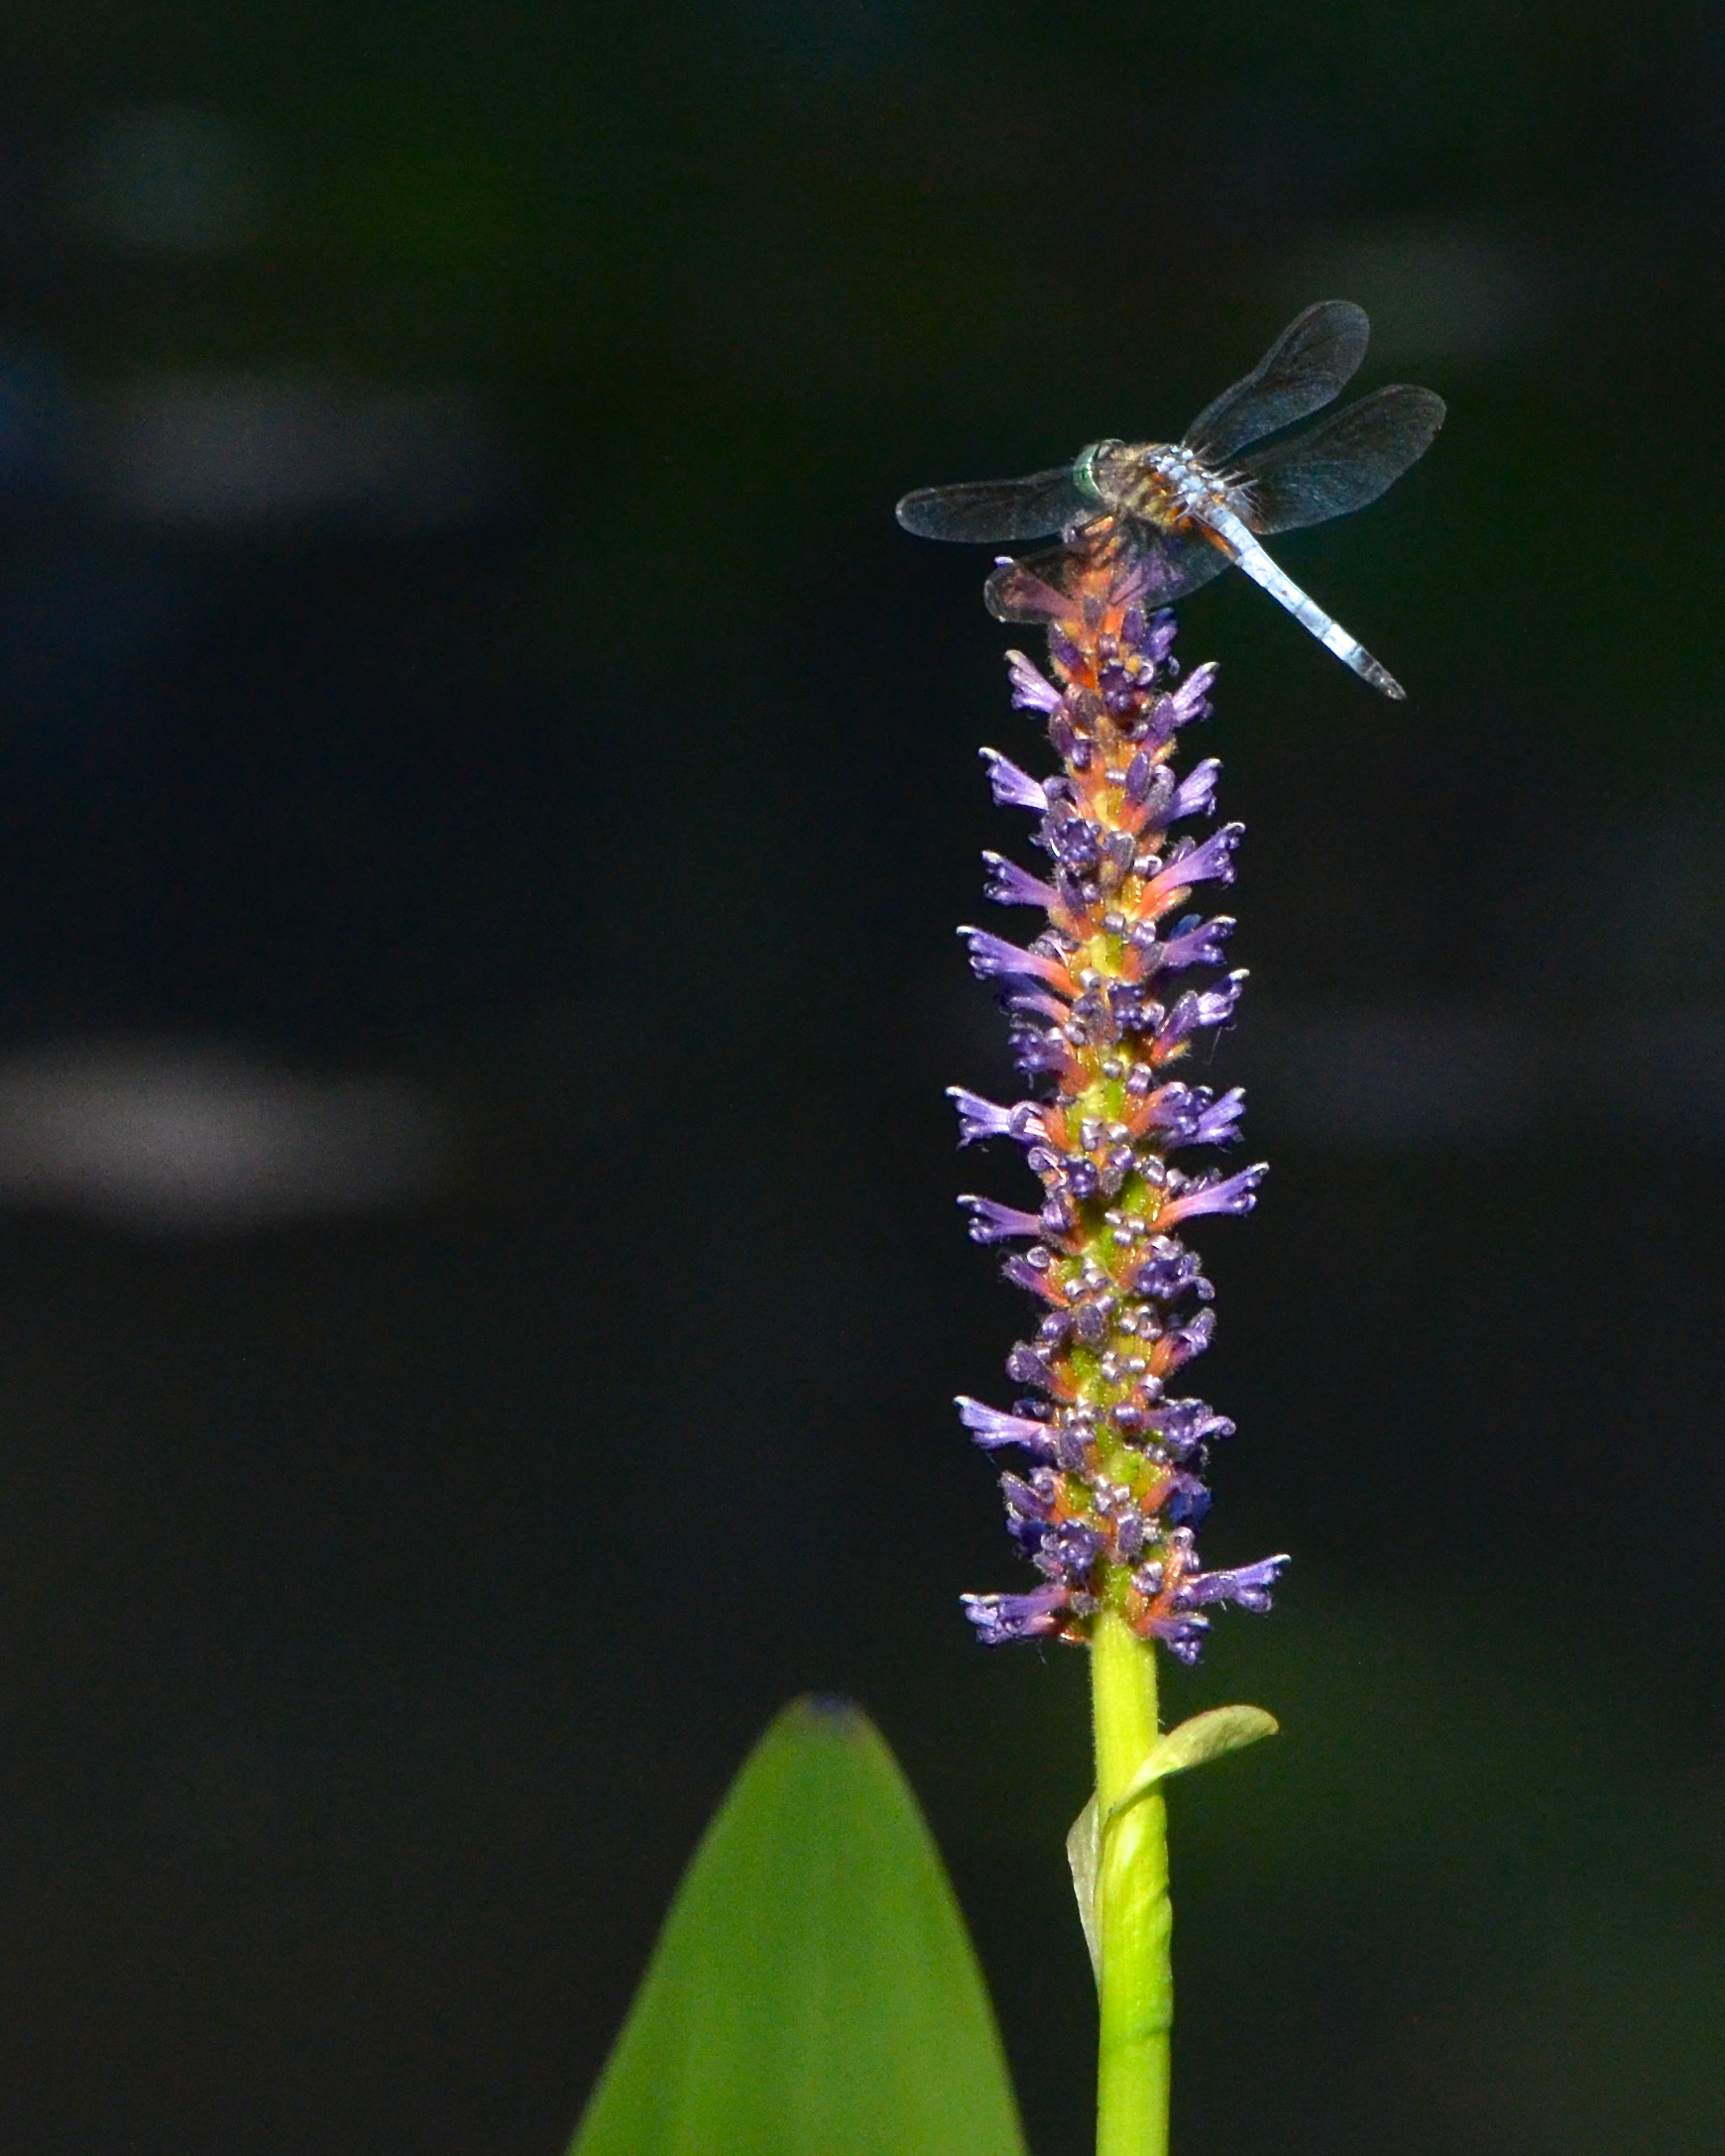 A dragonfly alights on a pickerel weed.